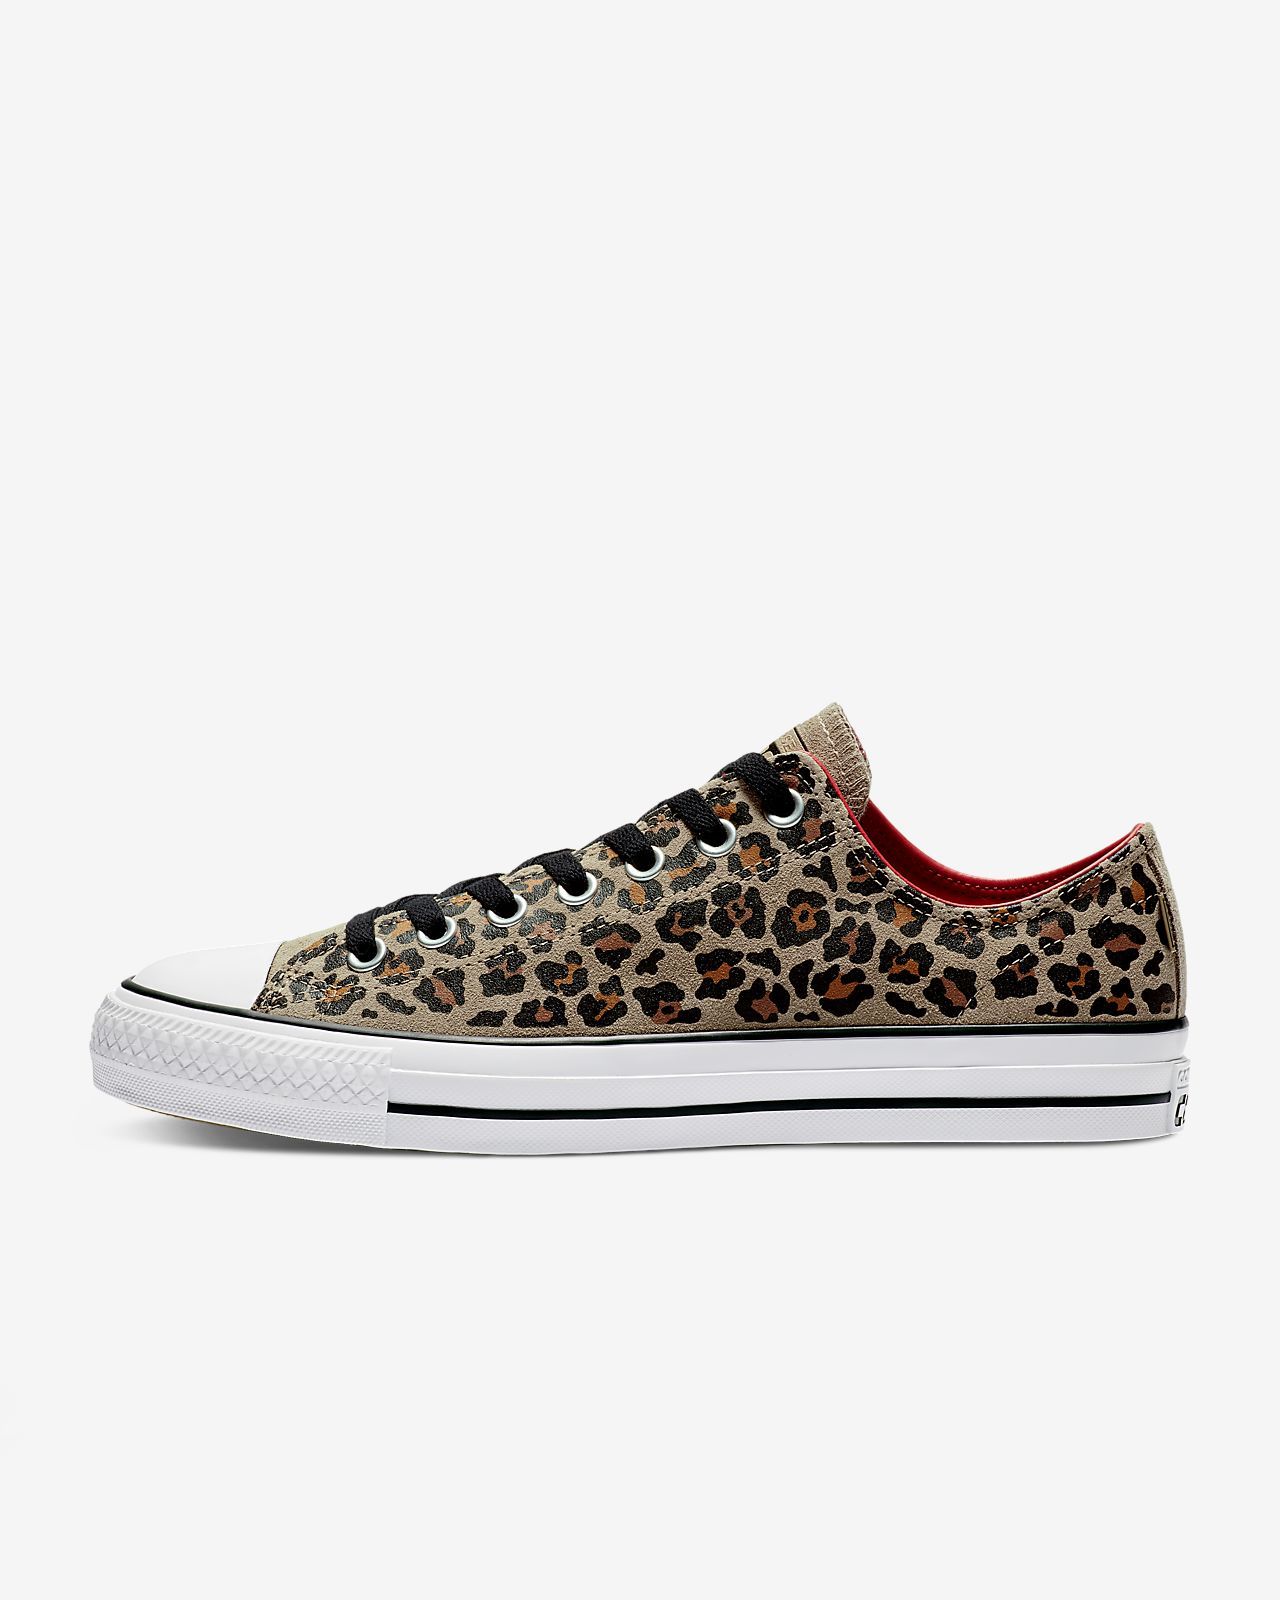 Chuck Taylor All Star Pro Low Top Unisex Shoe